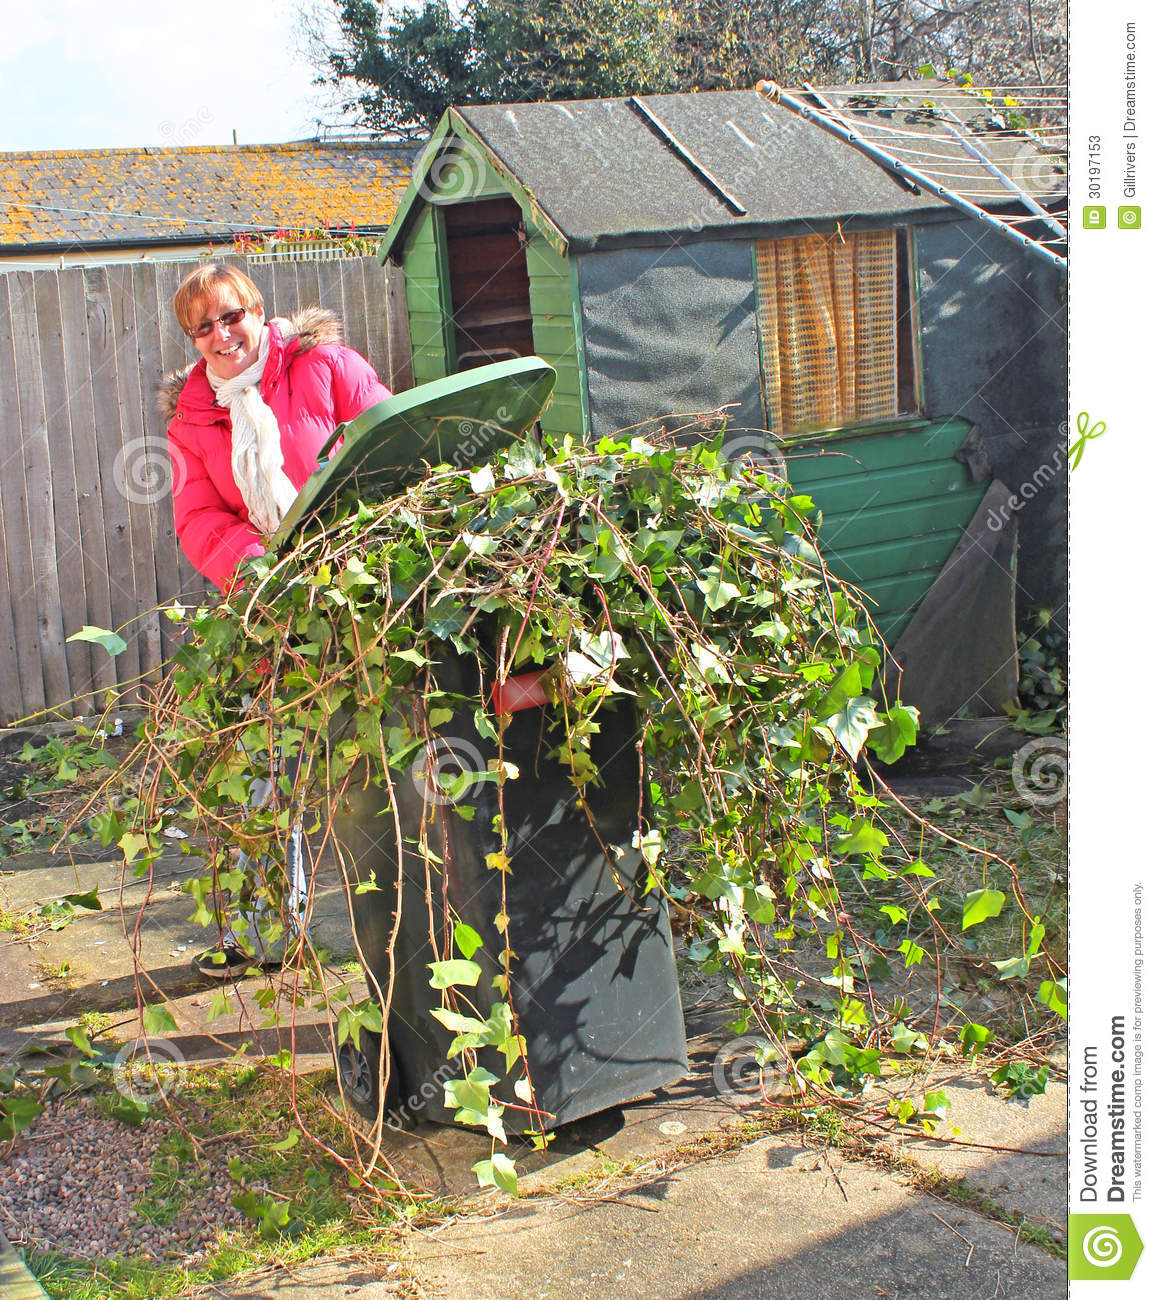 Garden Clearance Stock Image. Image Of Tendrils, Weed